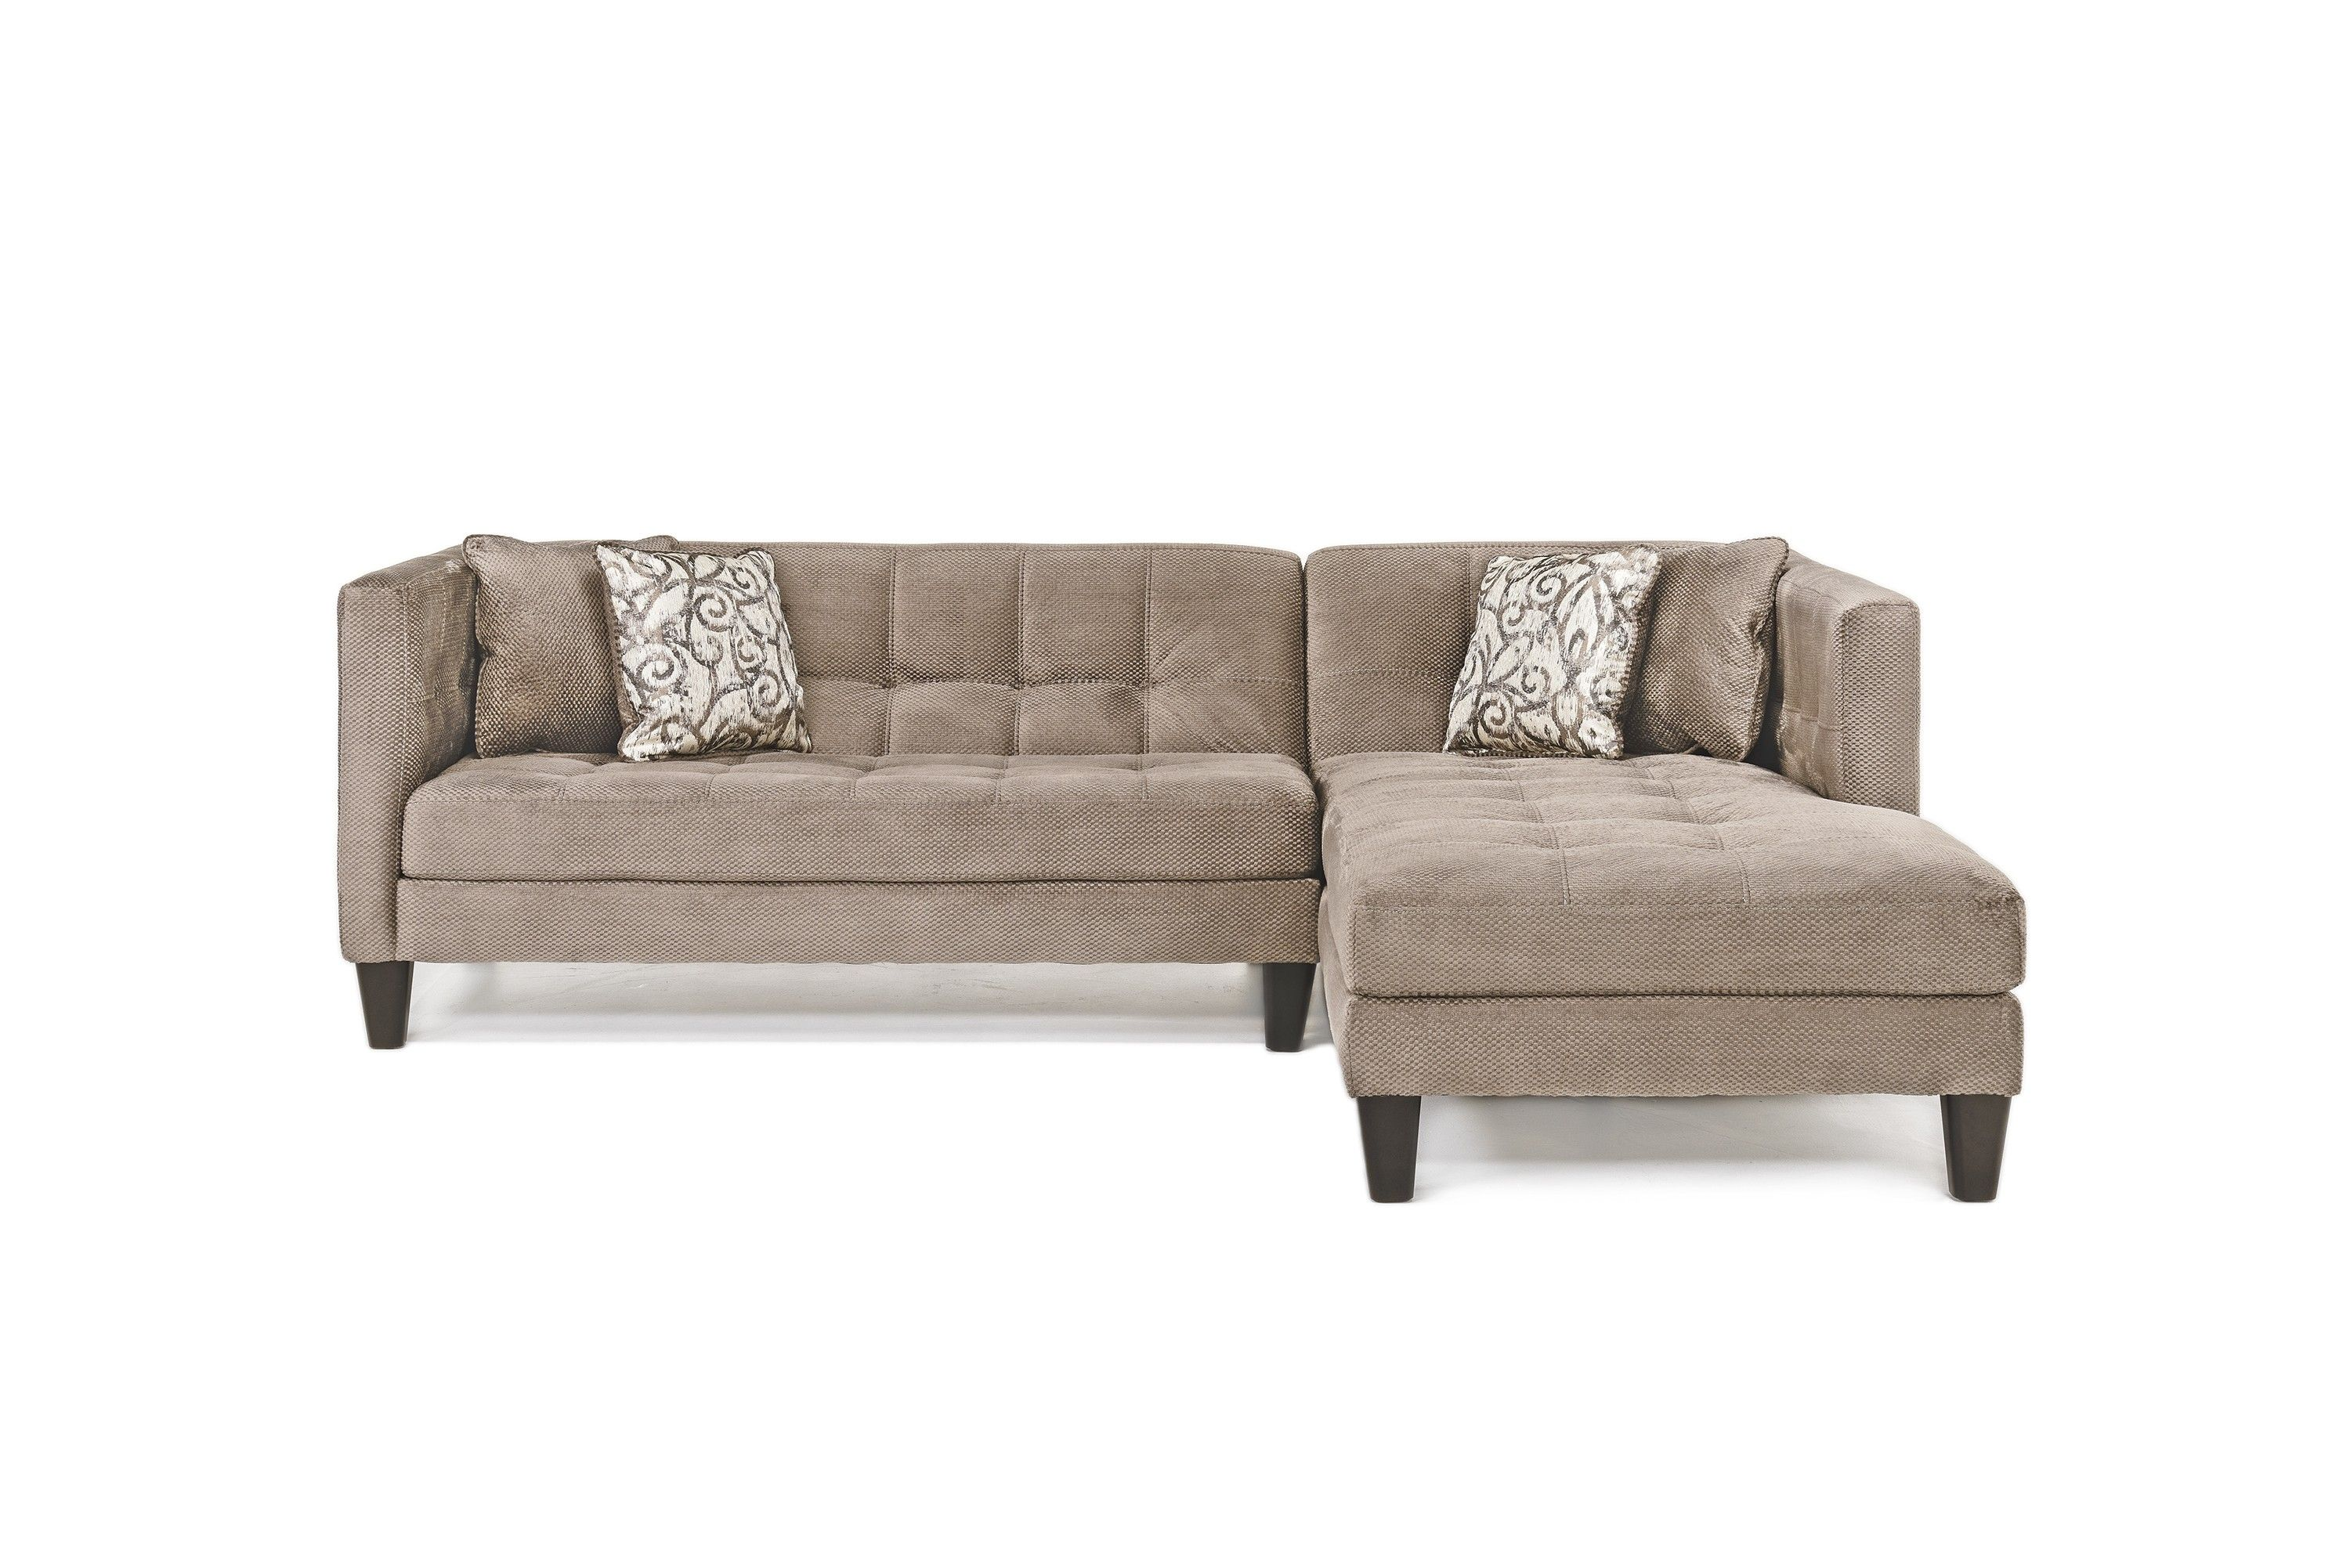 The Casanova Charcoal Chaise Sofa Is A Chic Sofa That Is Perfect